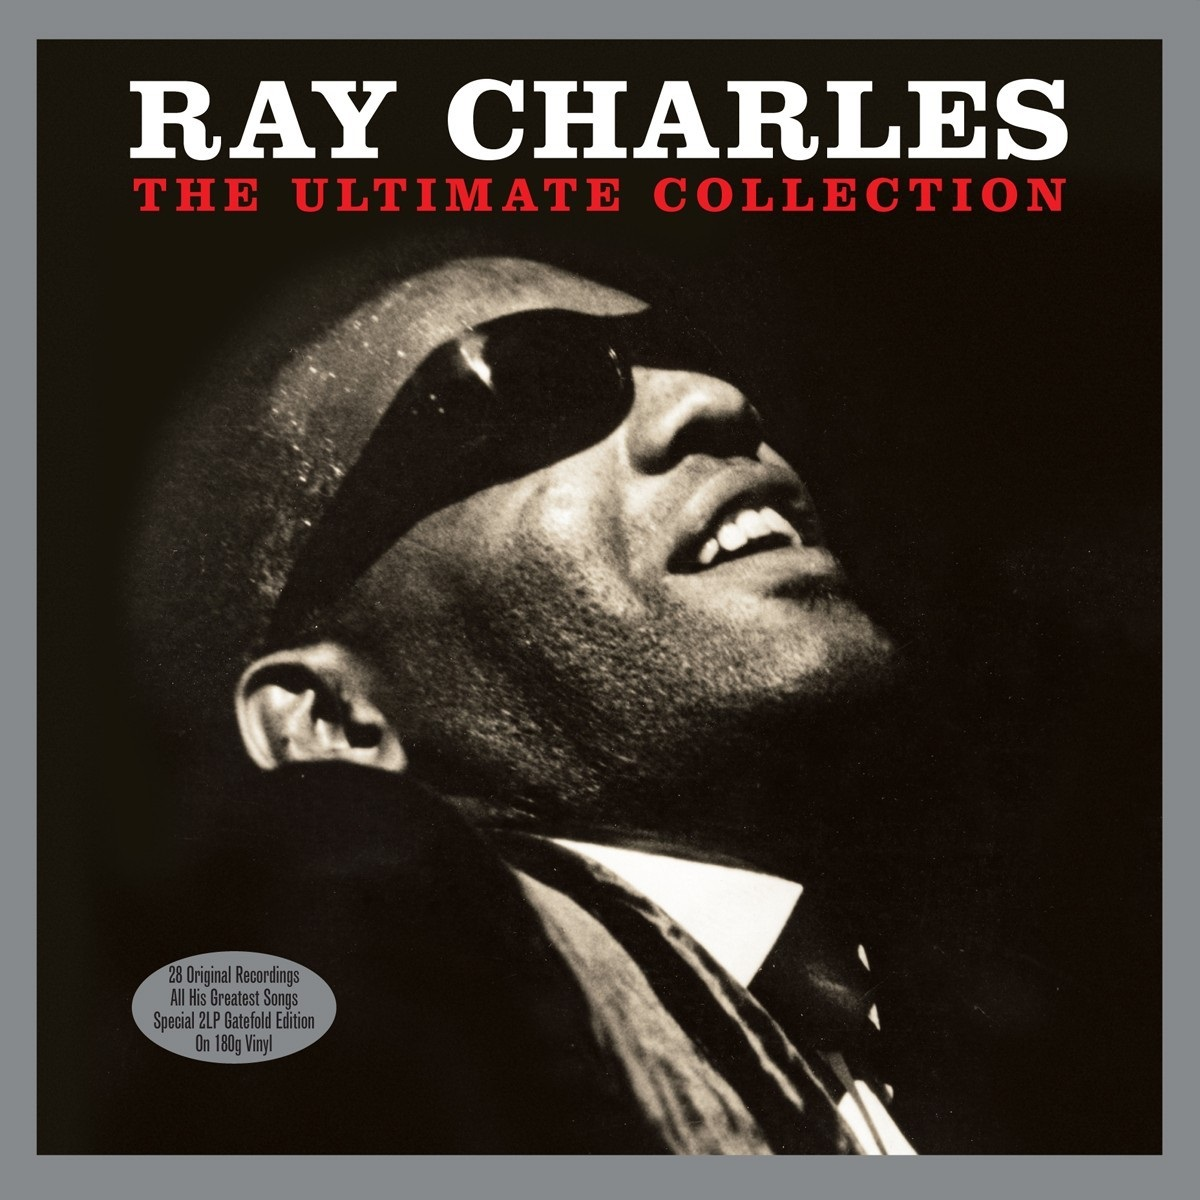 Ray Charles – The Ultimate Collection (2 LP) рэй чарльз ray charles king of cool the genius of ray charles 3 cd